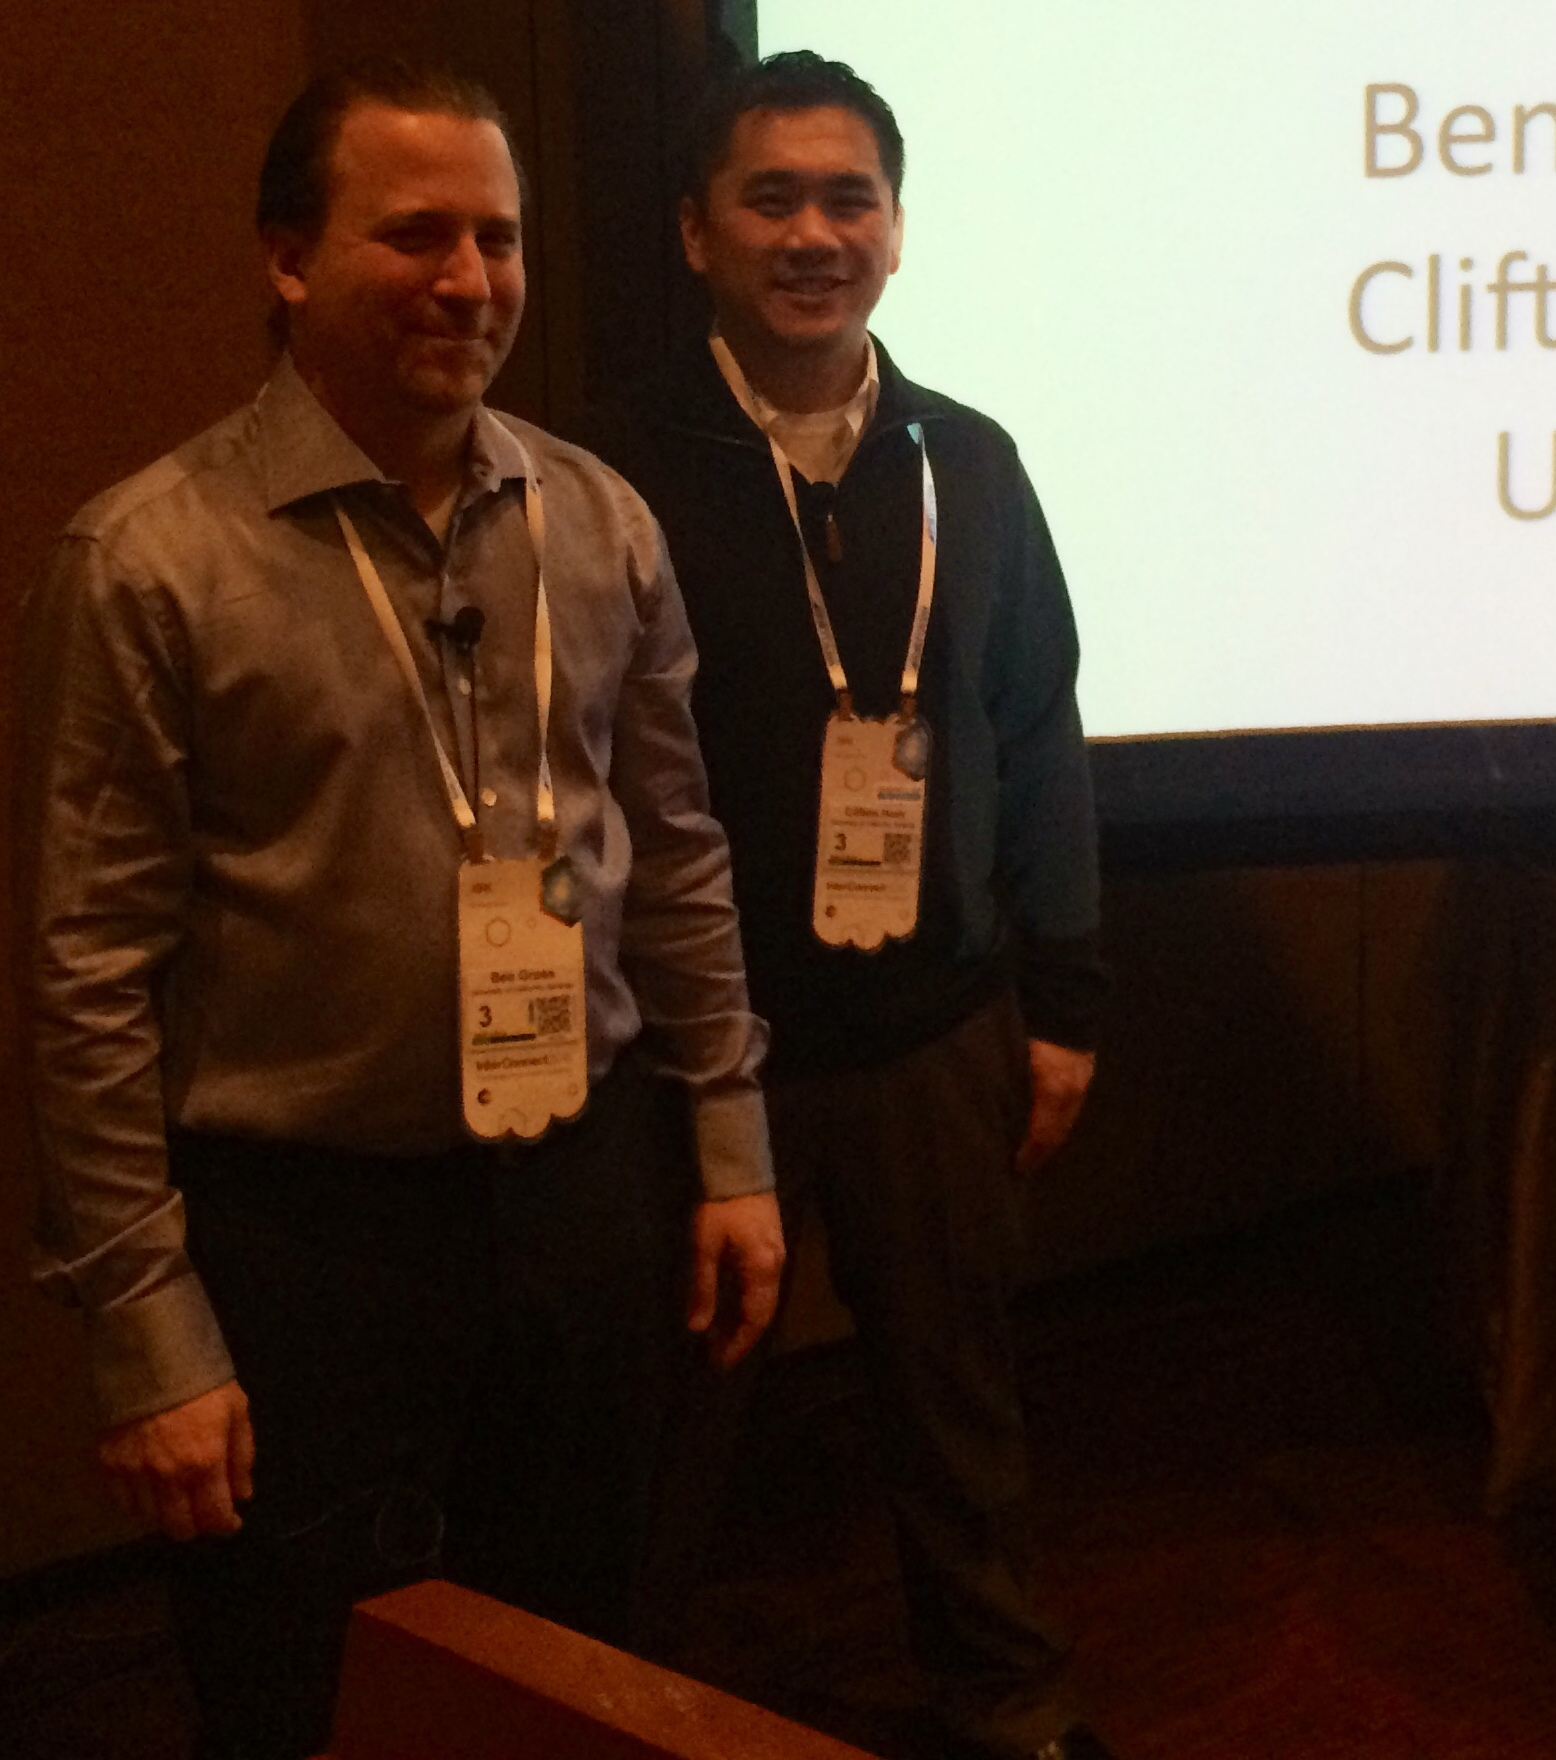 Ben Gross and Clifton Hom of UC Berkeley's IT department at IBM InterConnect 2015